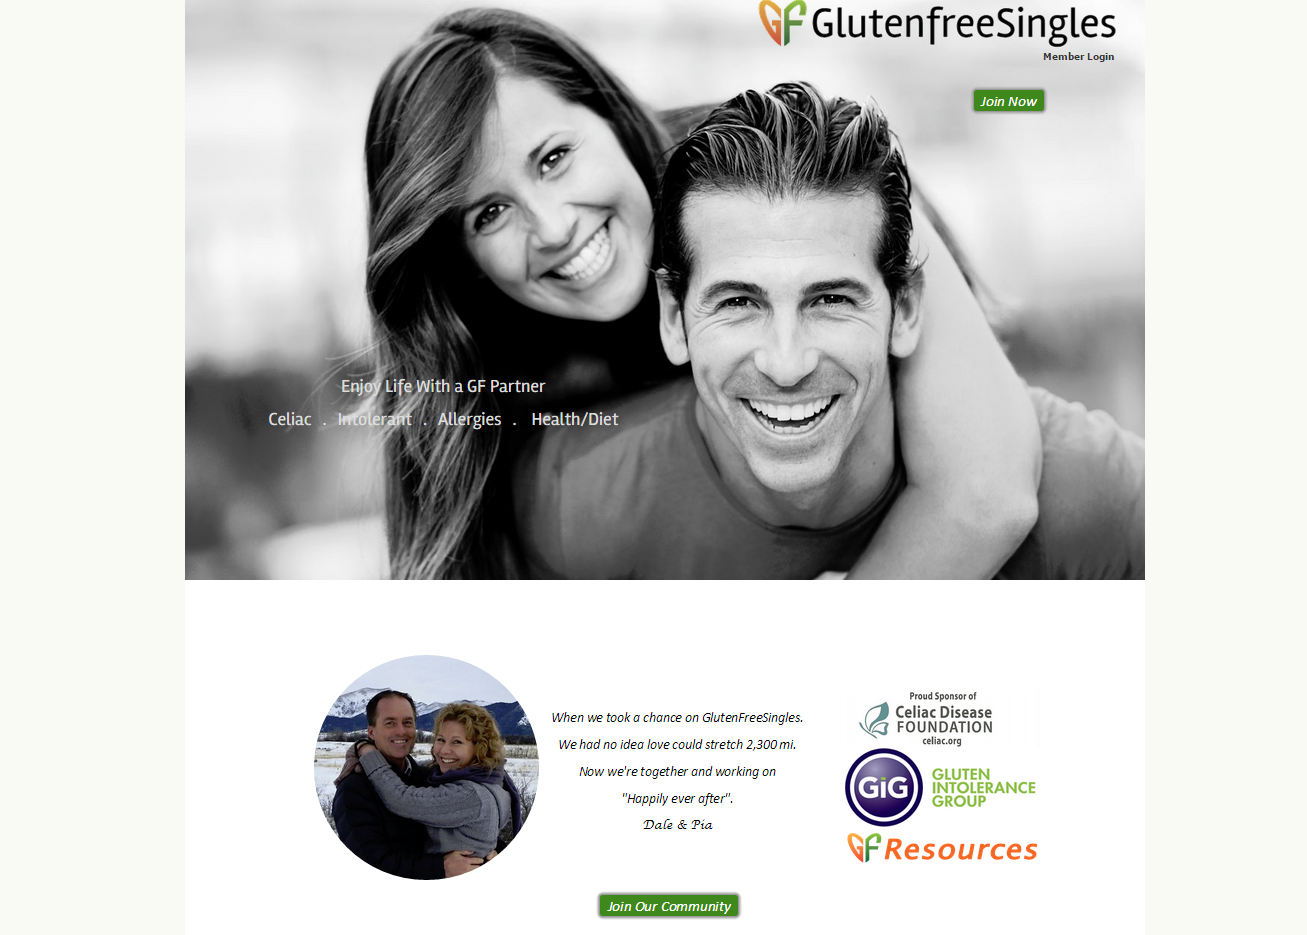 Gluten free dating site